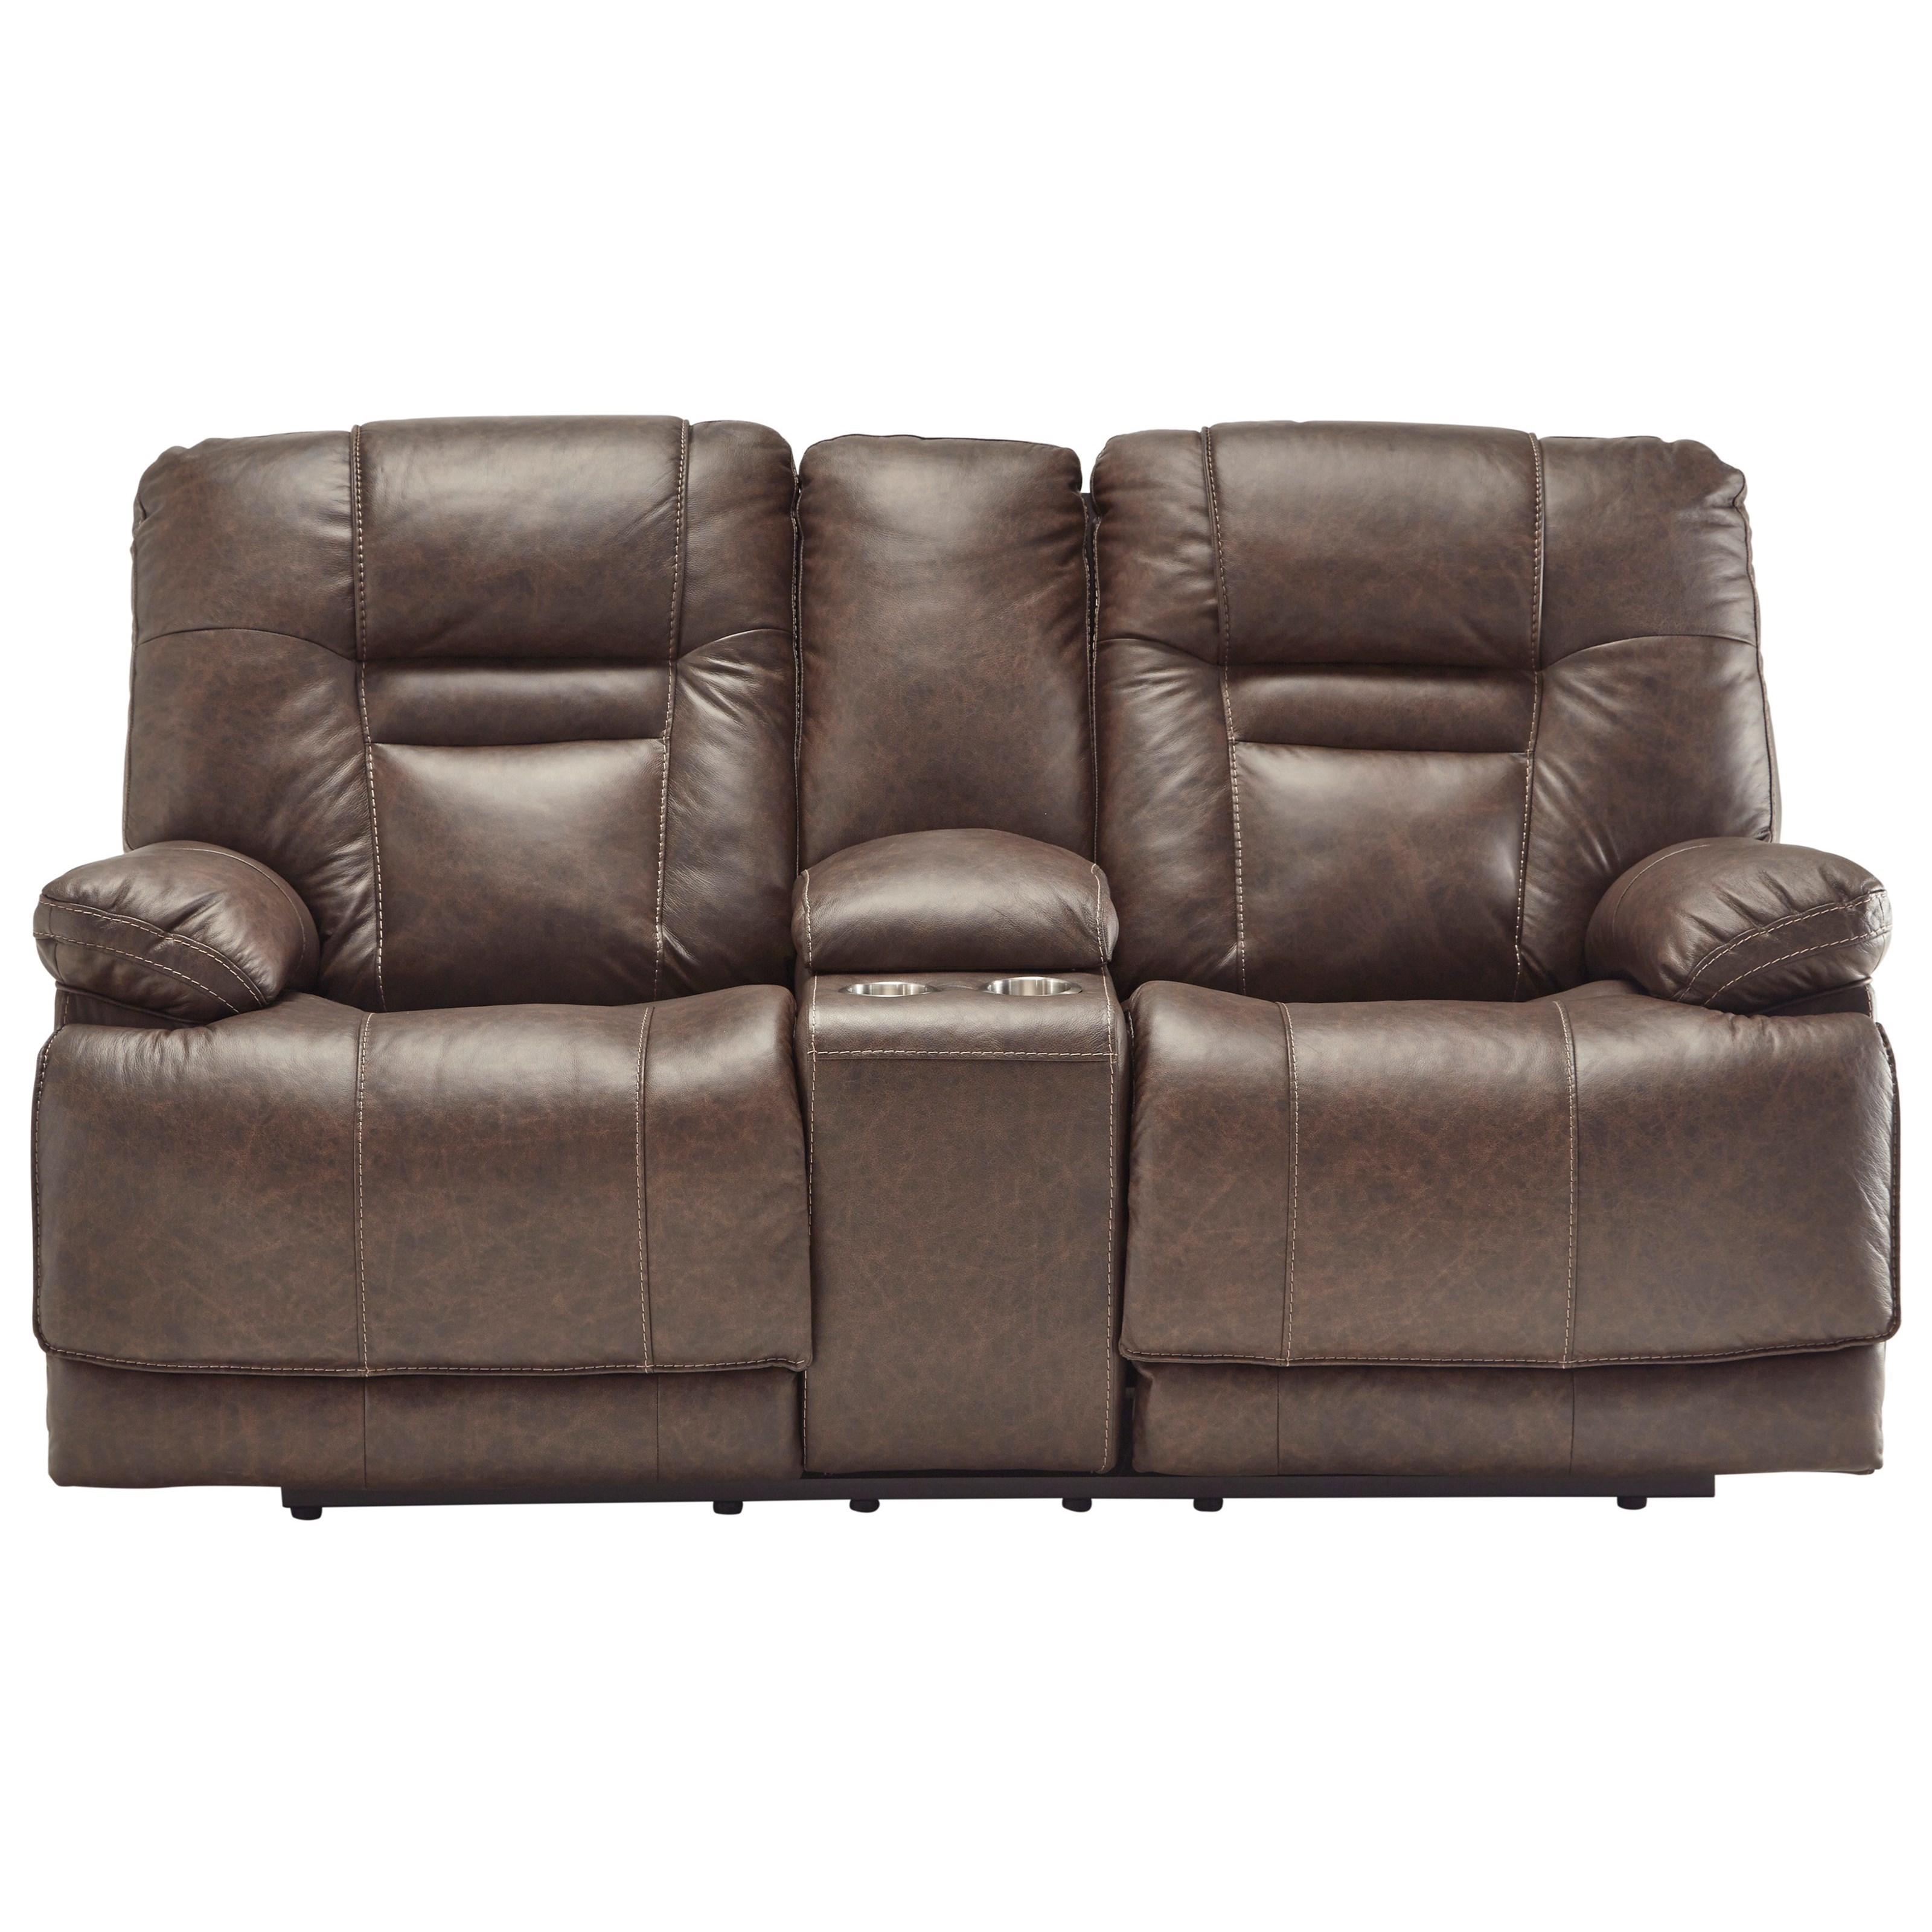 PWR Headrest/PWR Lumbar/PWR Reclining Leather Leather Loveseat